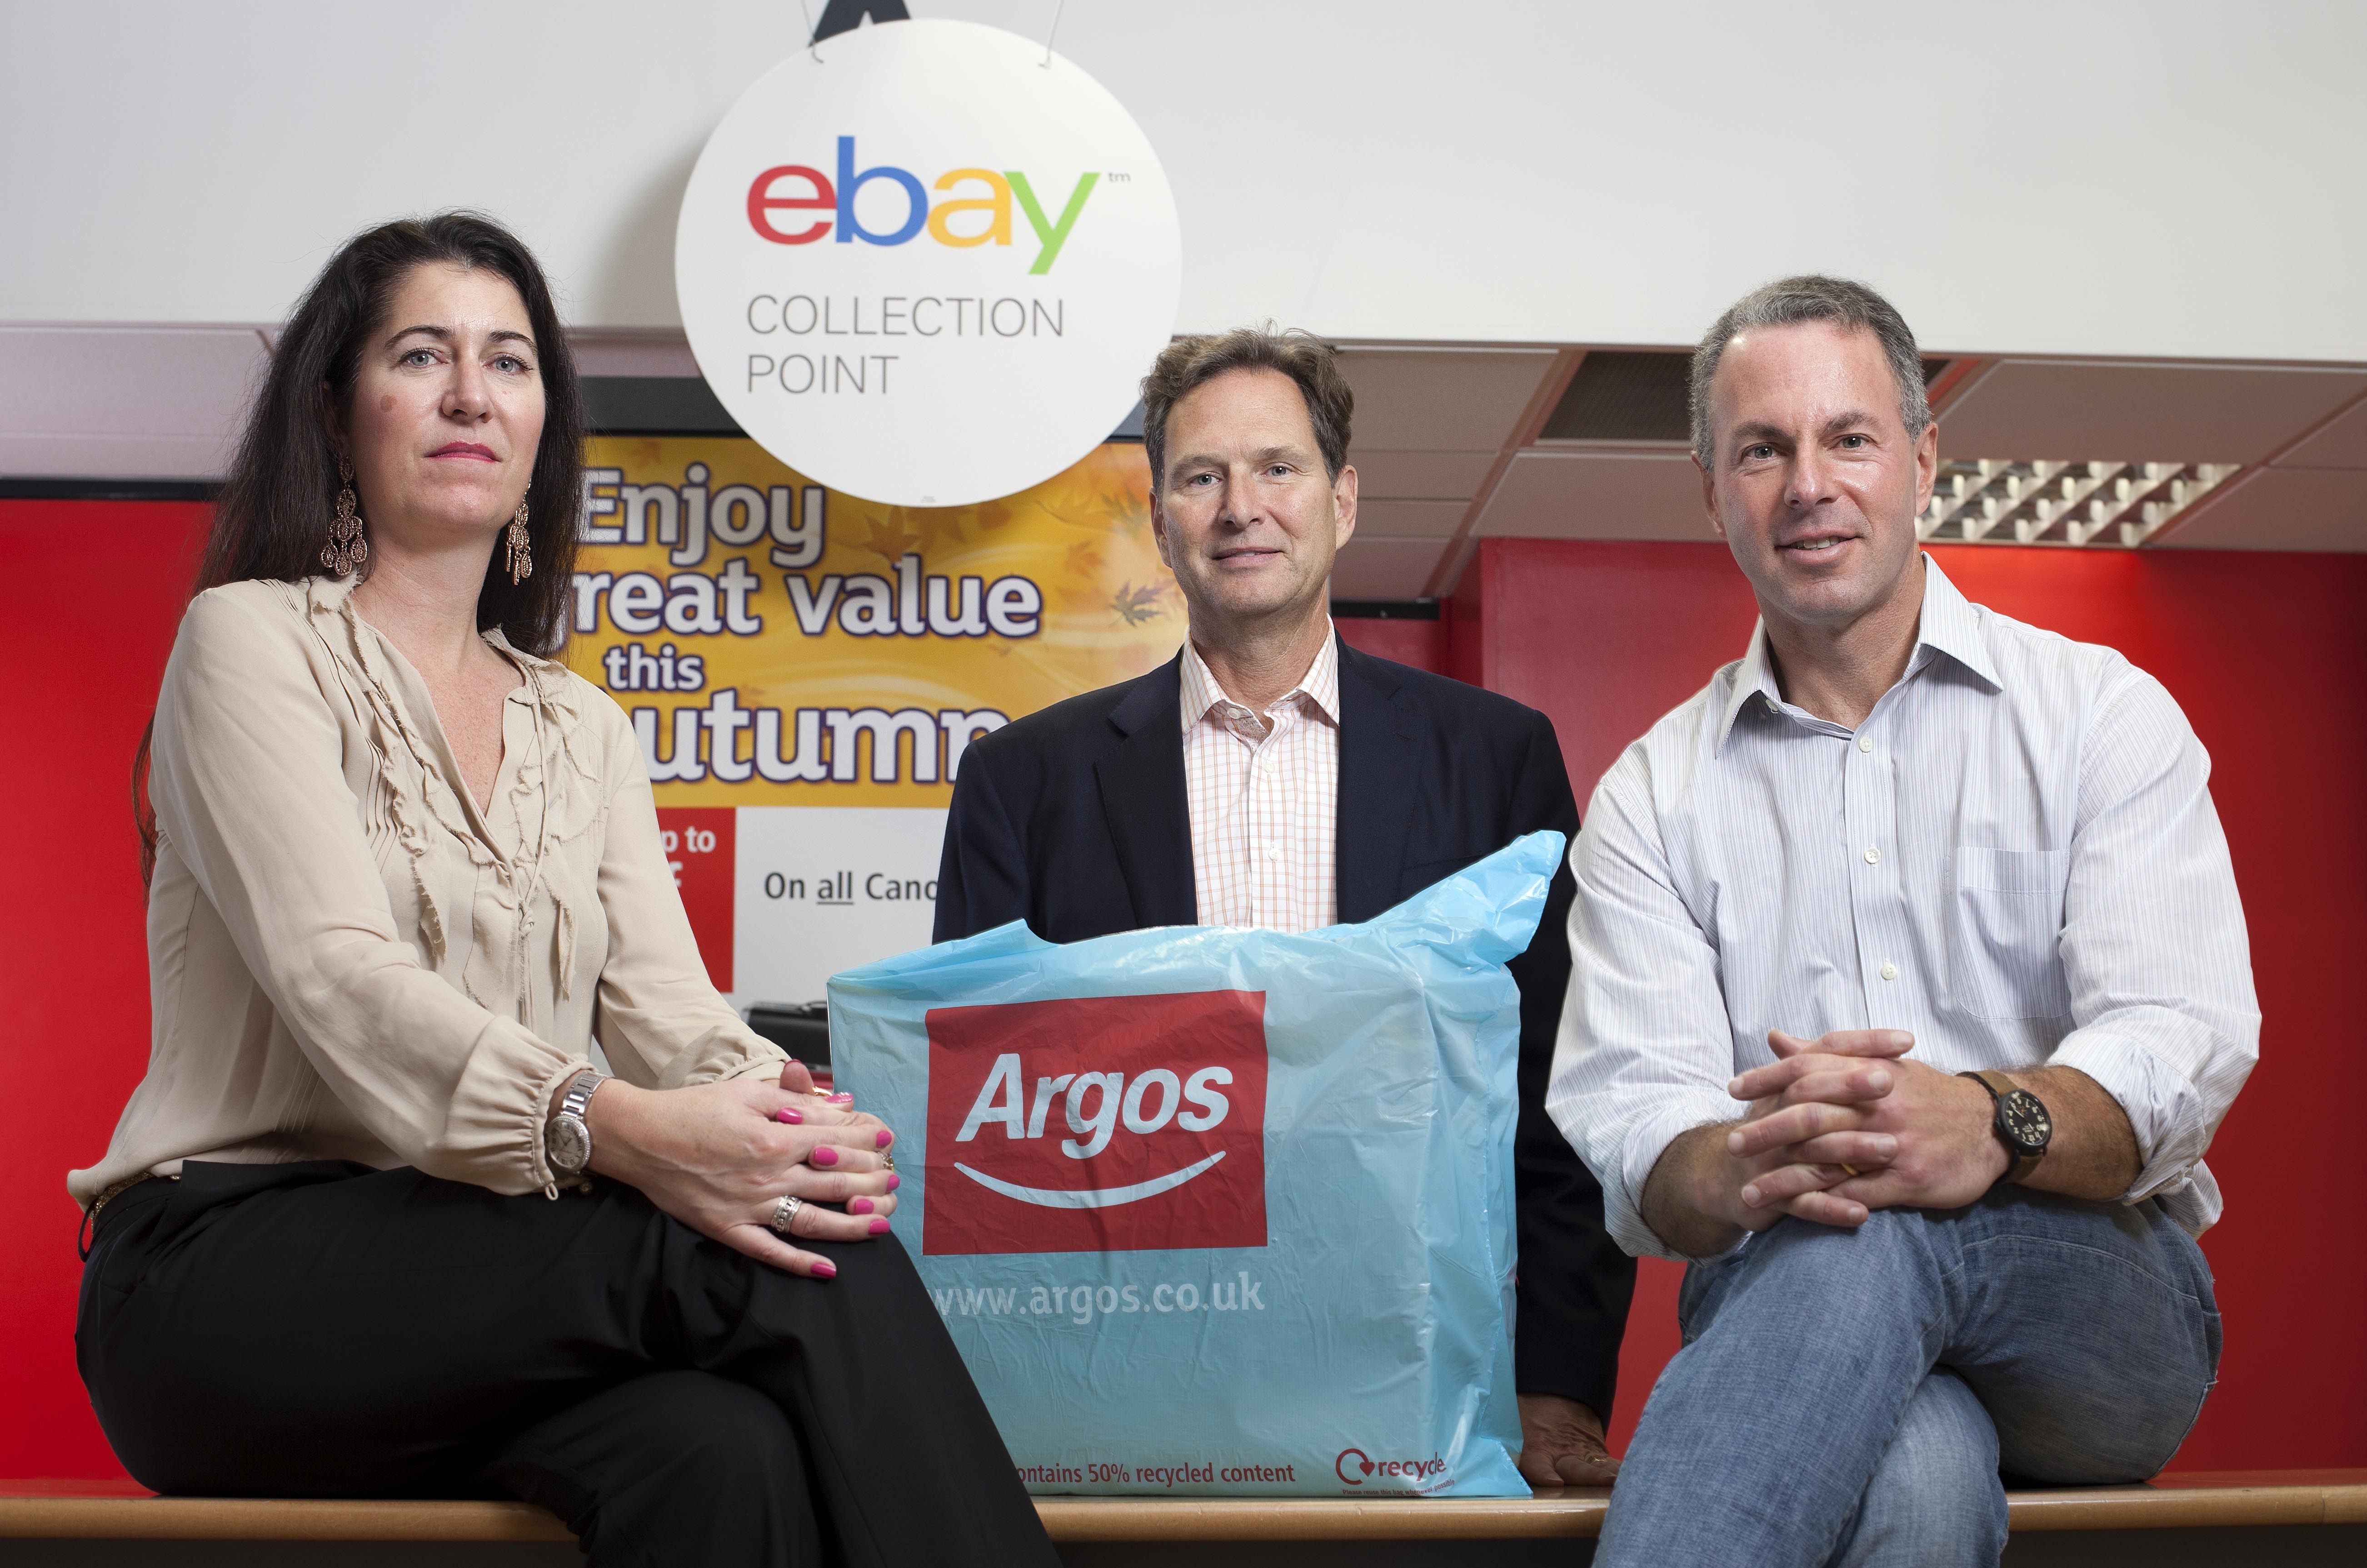 New Service Enables Ebay Sellers To Offer Collection At Argos Business Wire